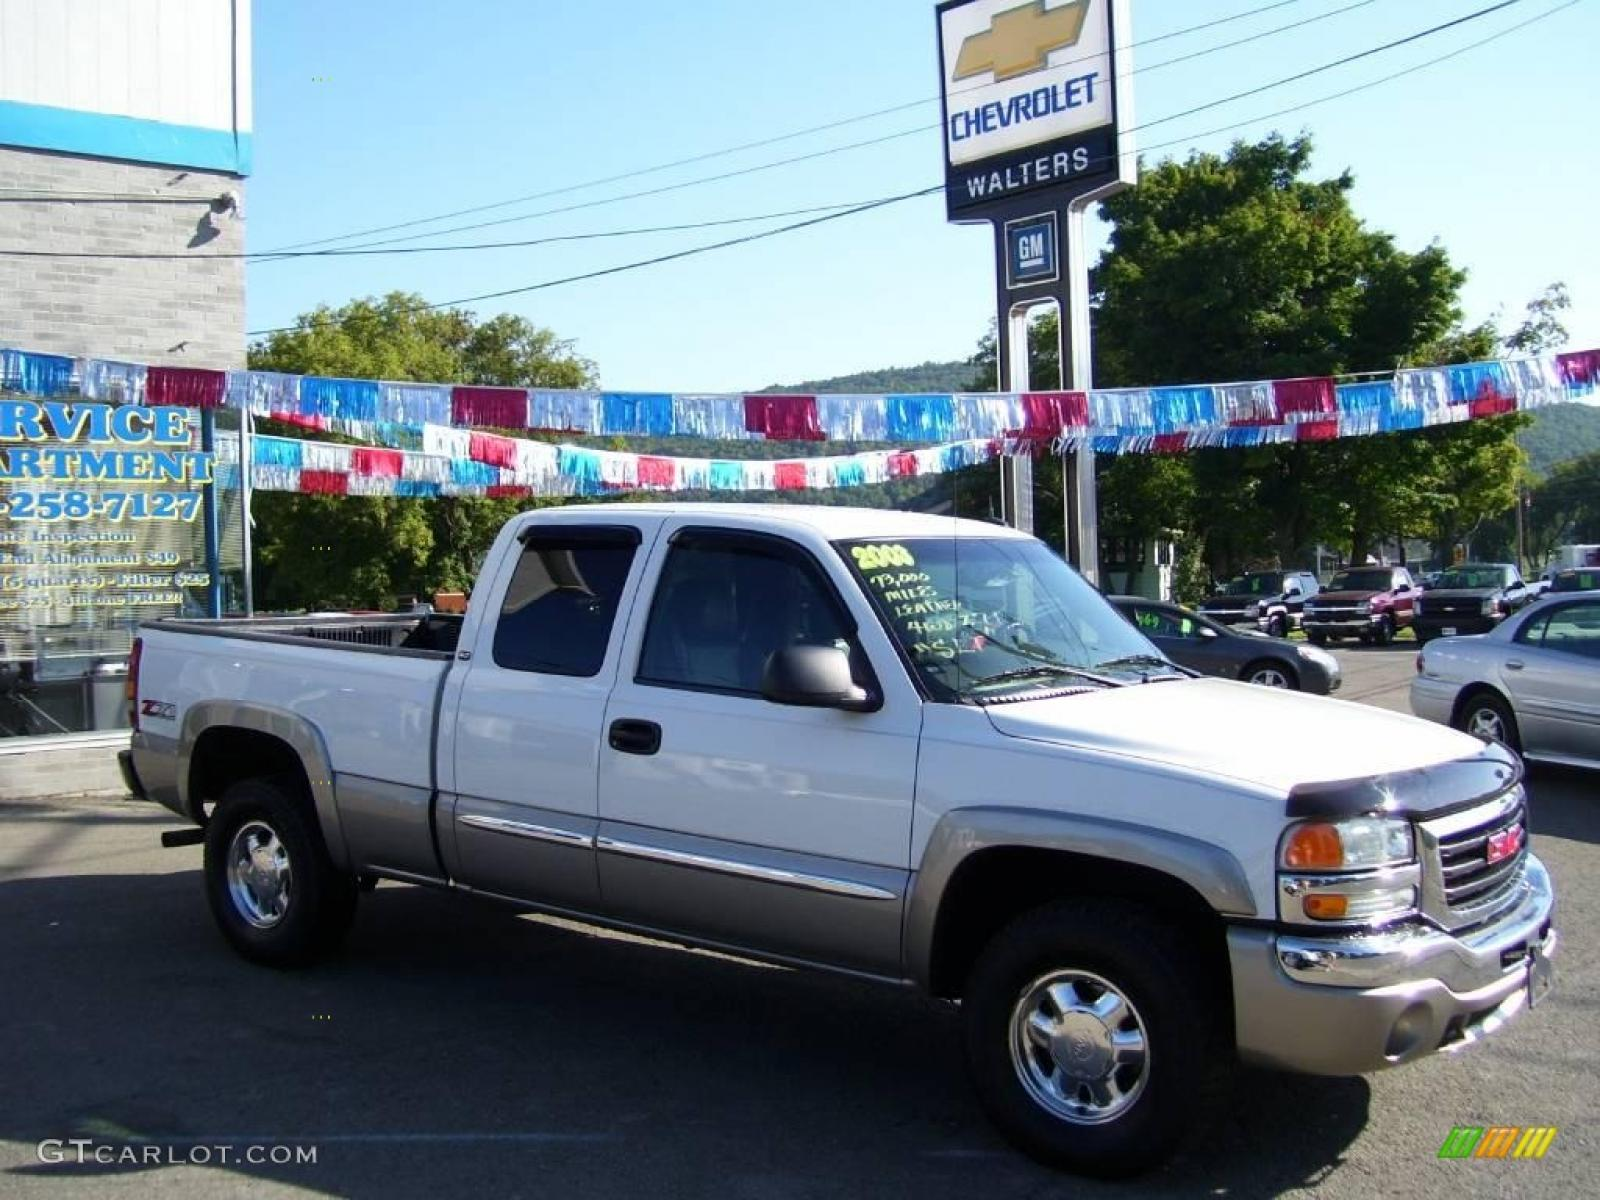 800 1024 1280 1600 origin 2003 gmc sierra